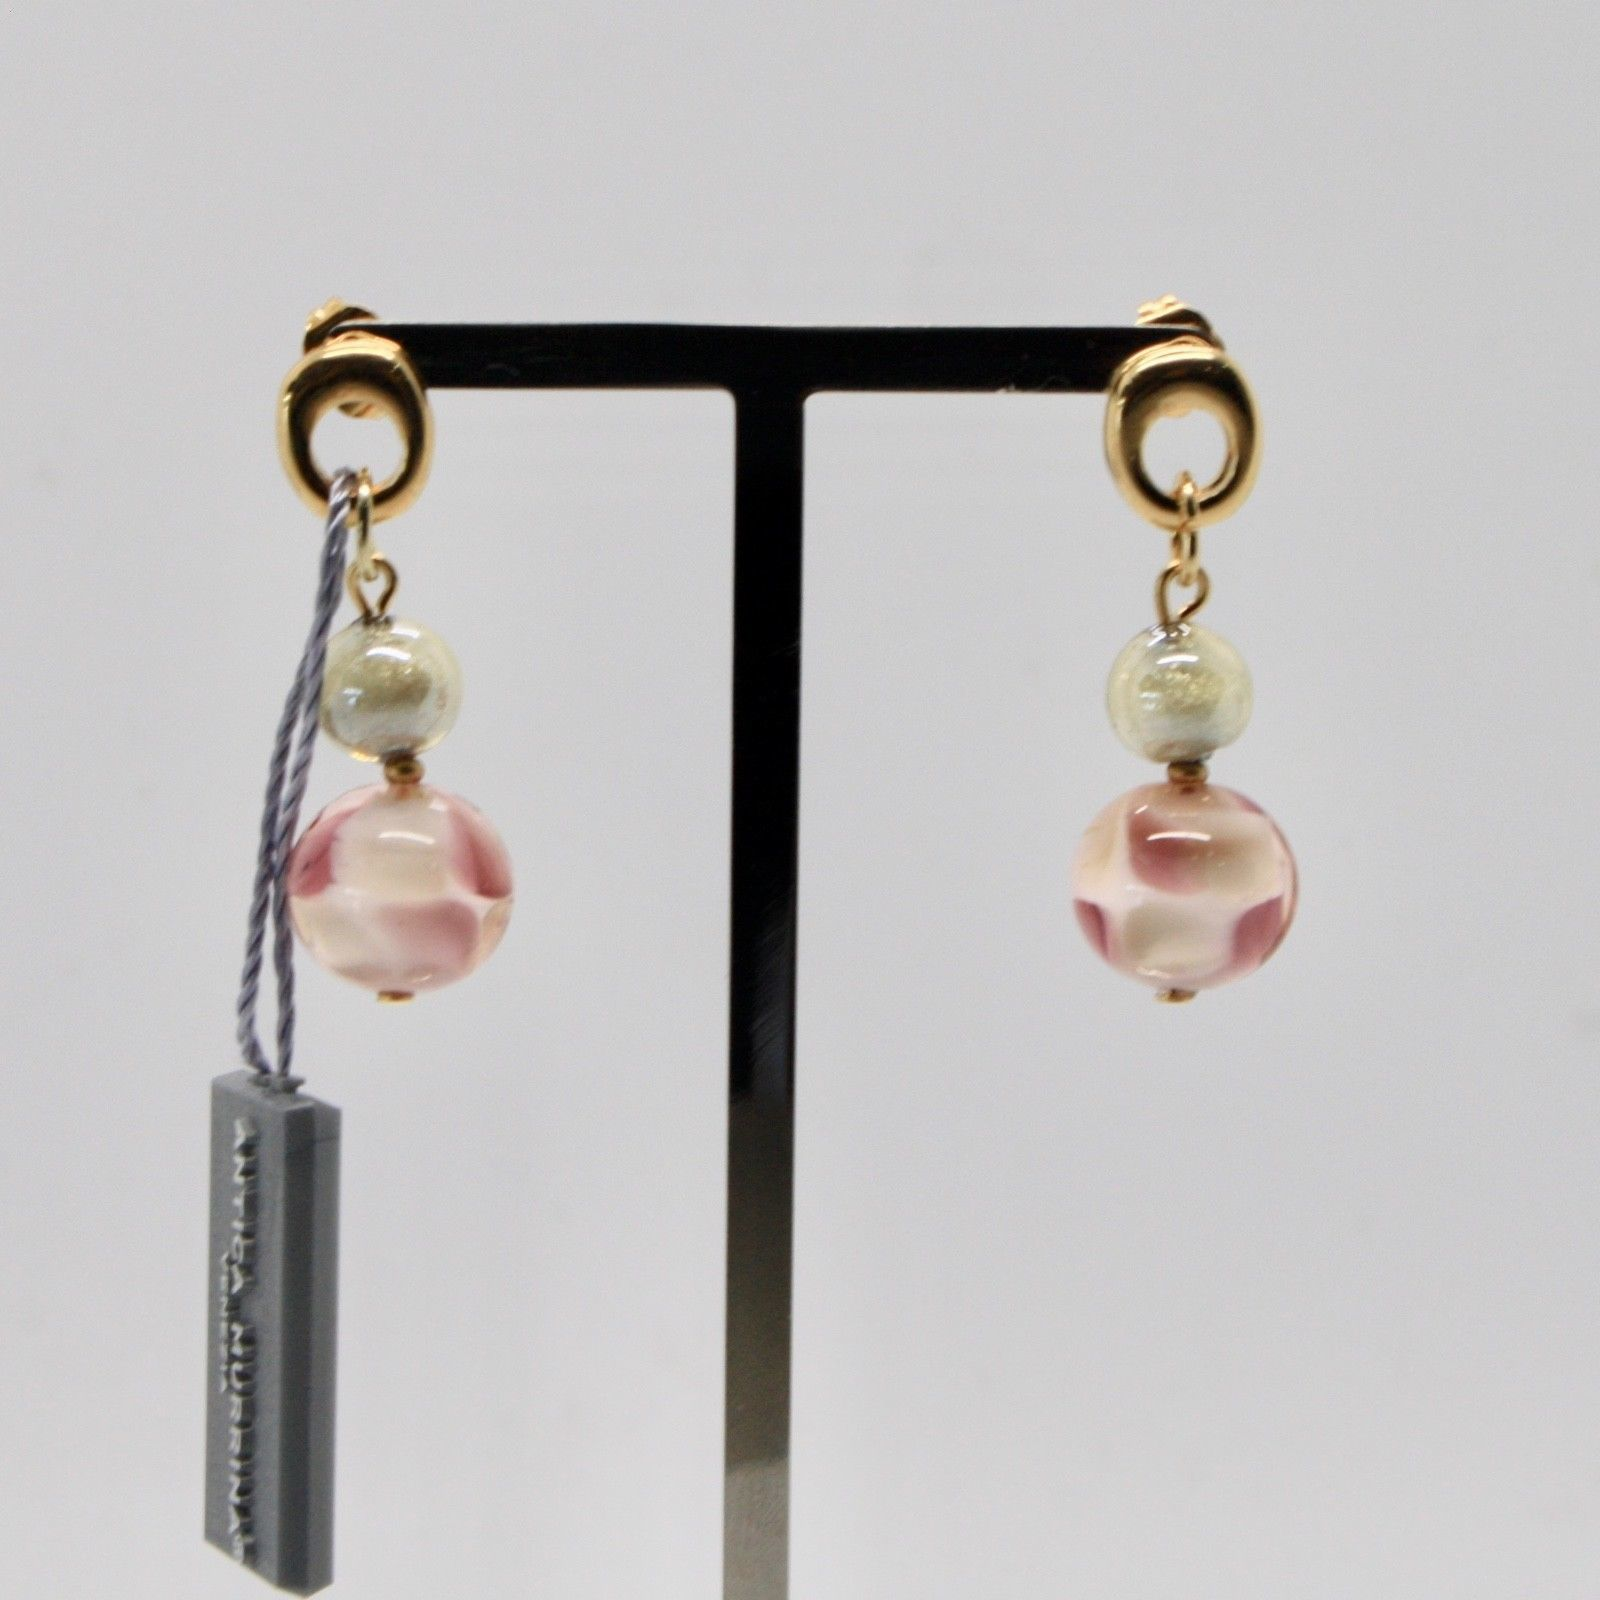 ANTICA MURRINA VENEZIA EARRINGS WITH MULTICOLOR MURANO GLASS AND STEEL OR588A05